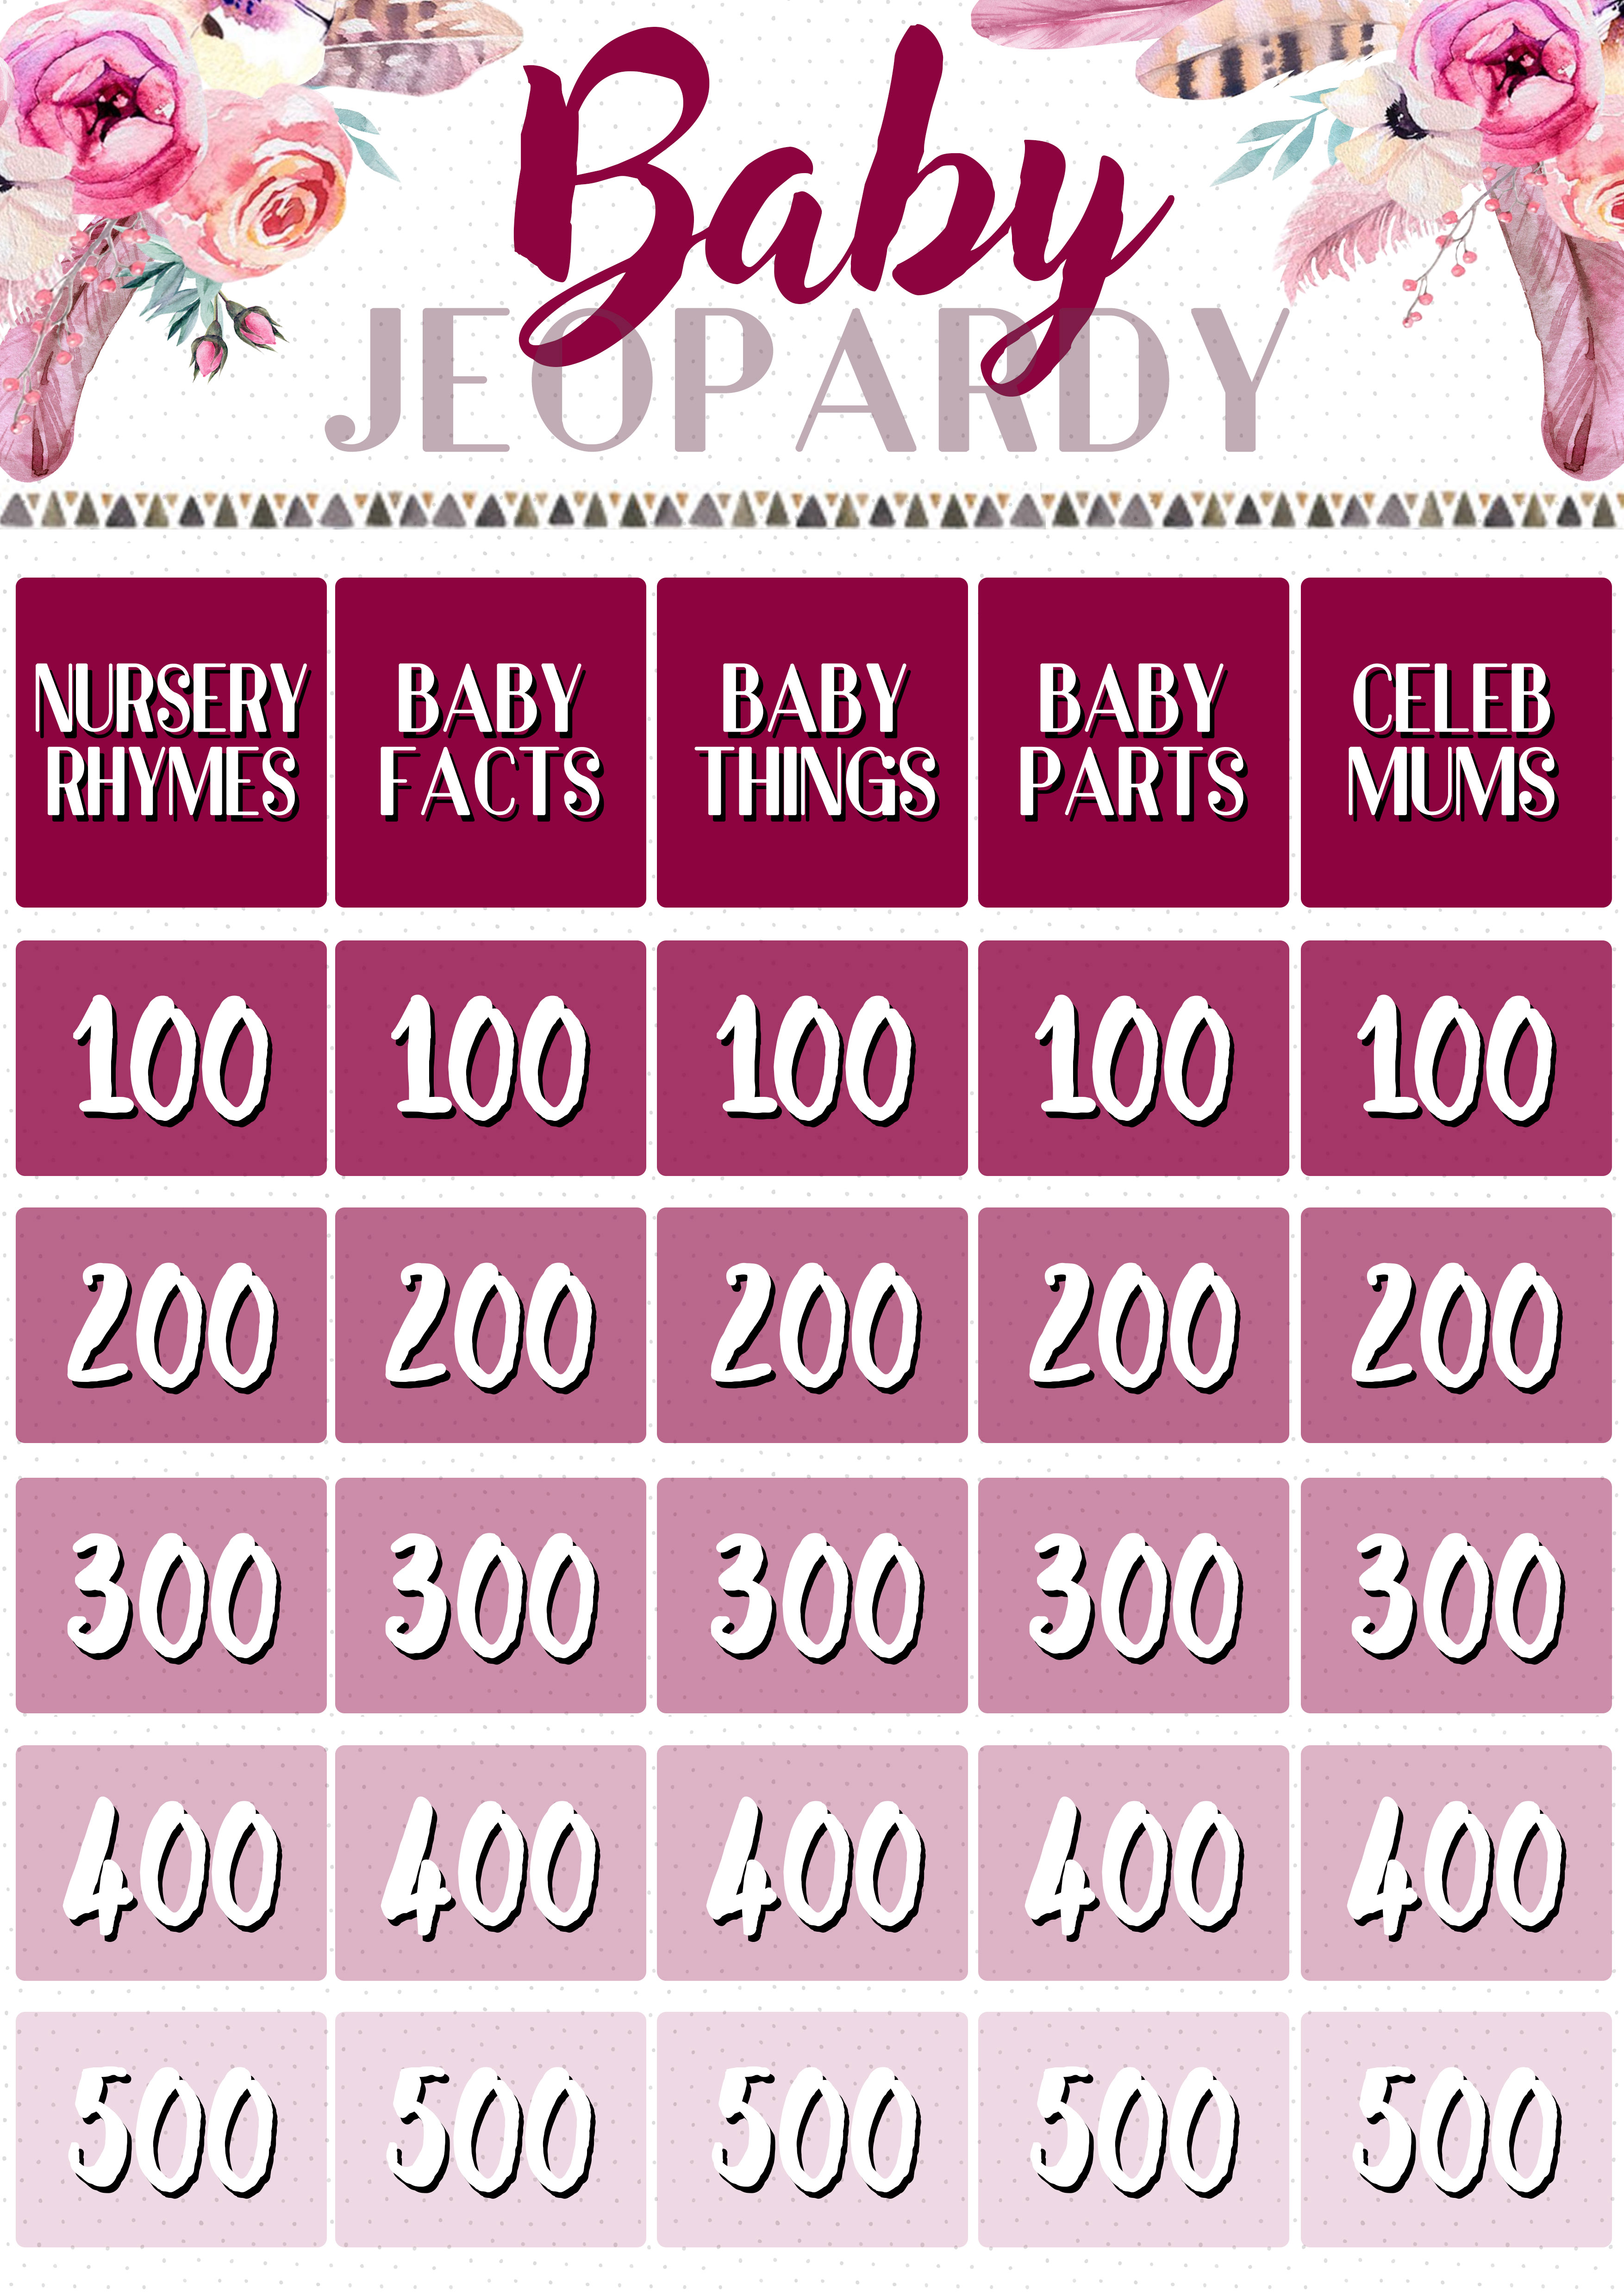 Baby Jeopardy Baby Shower Game Printable